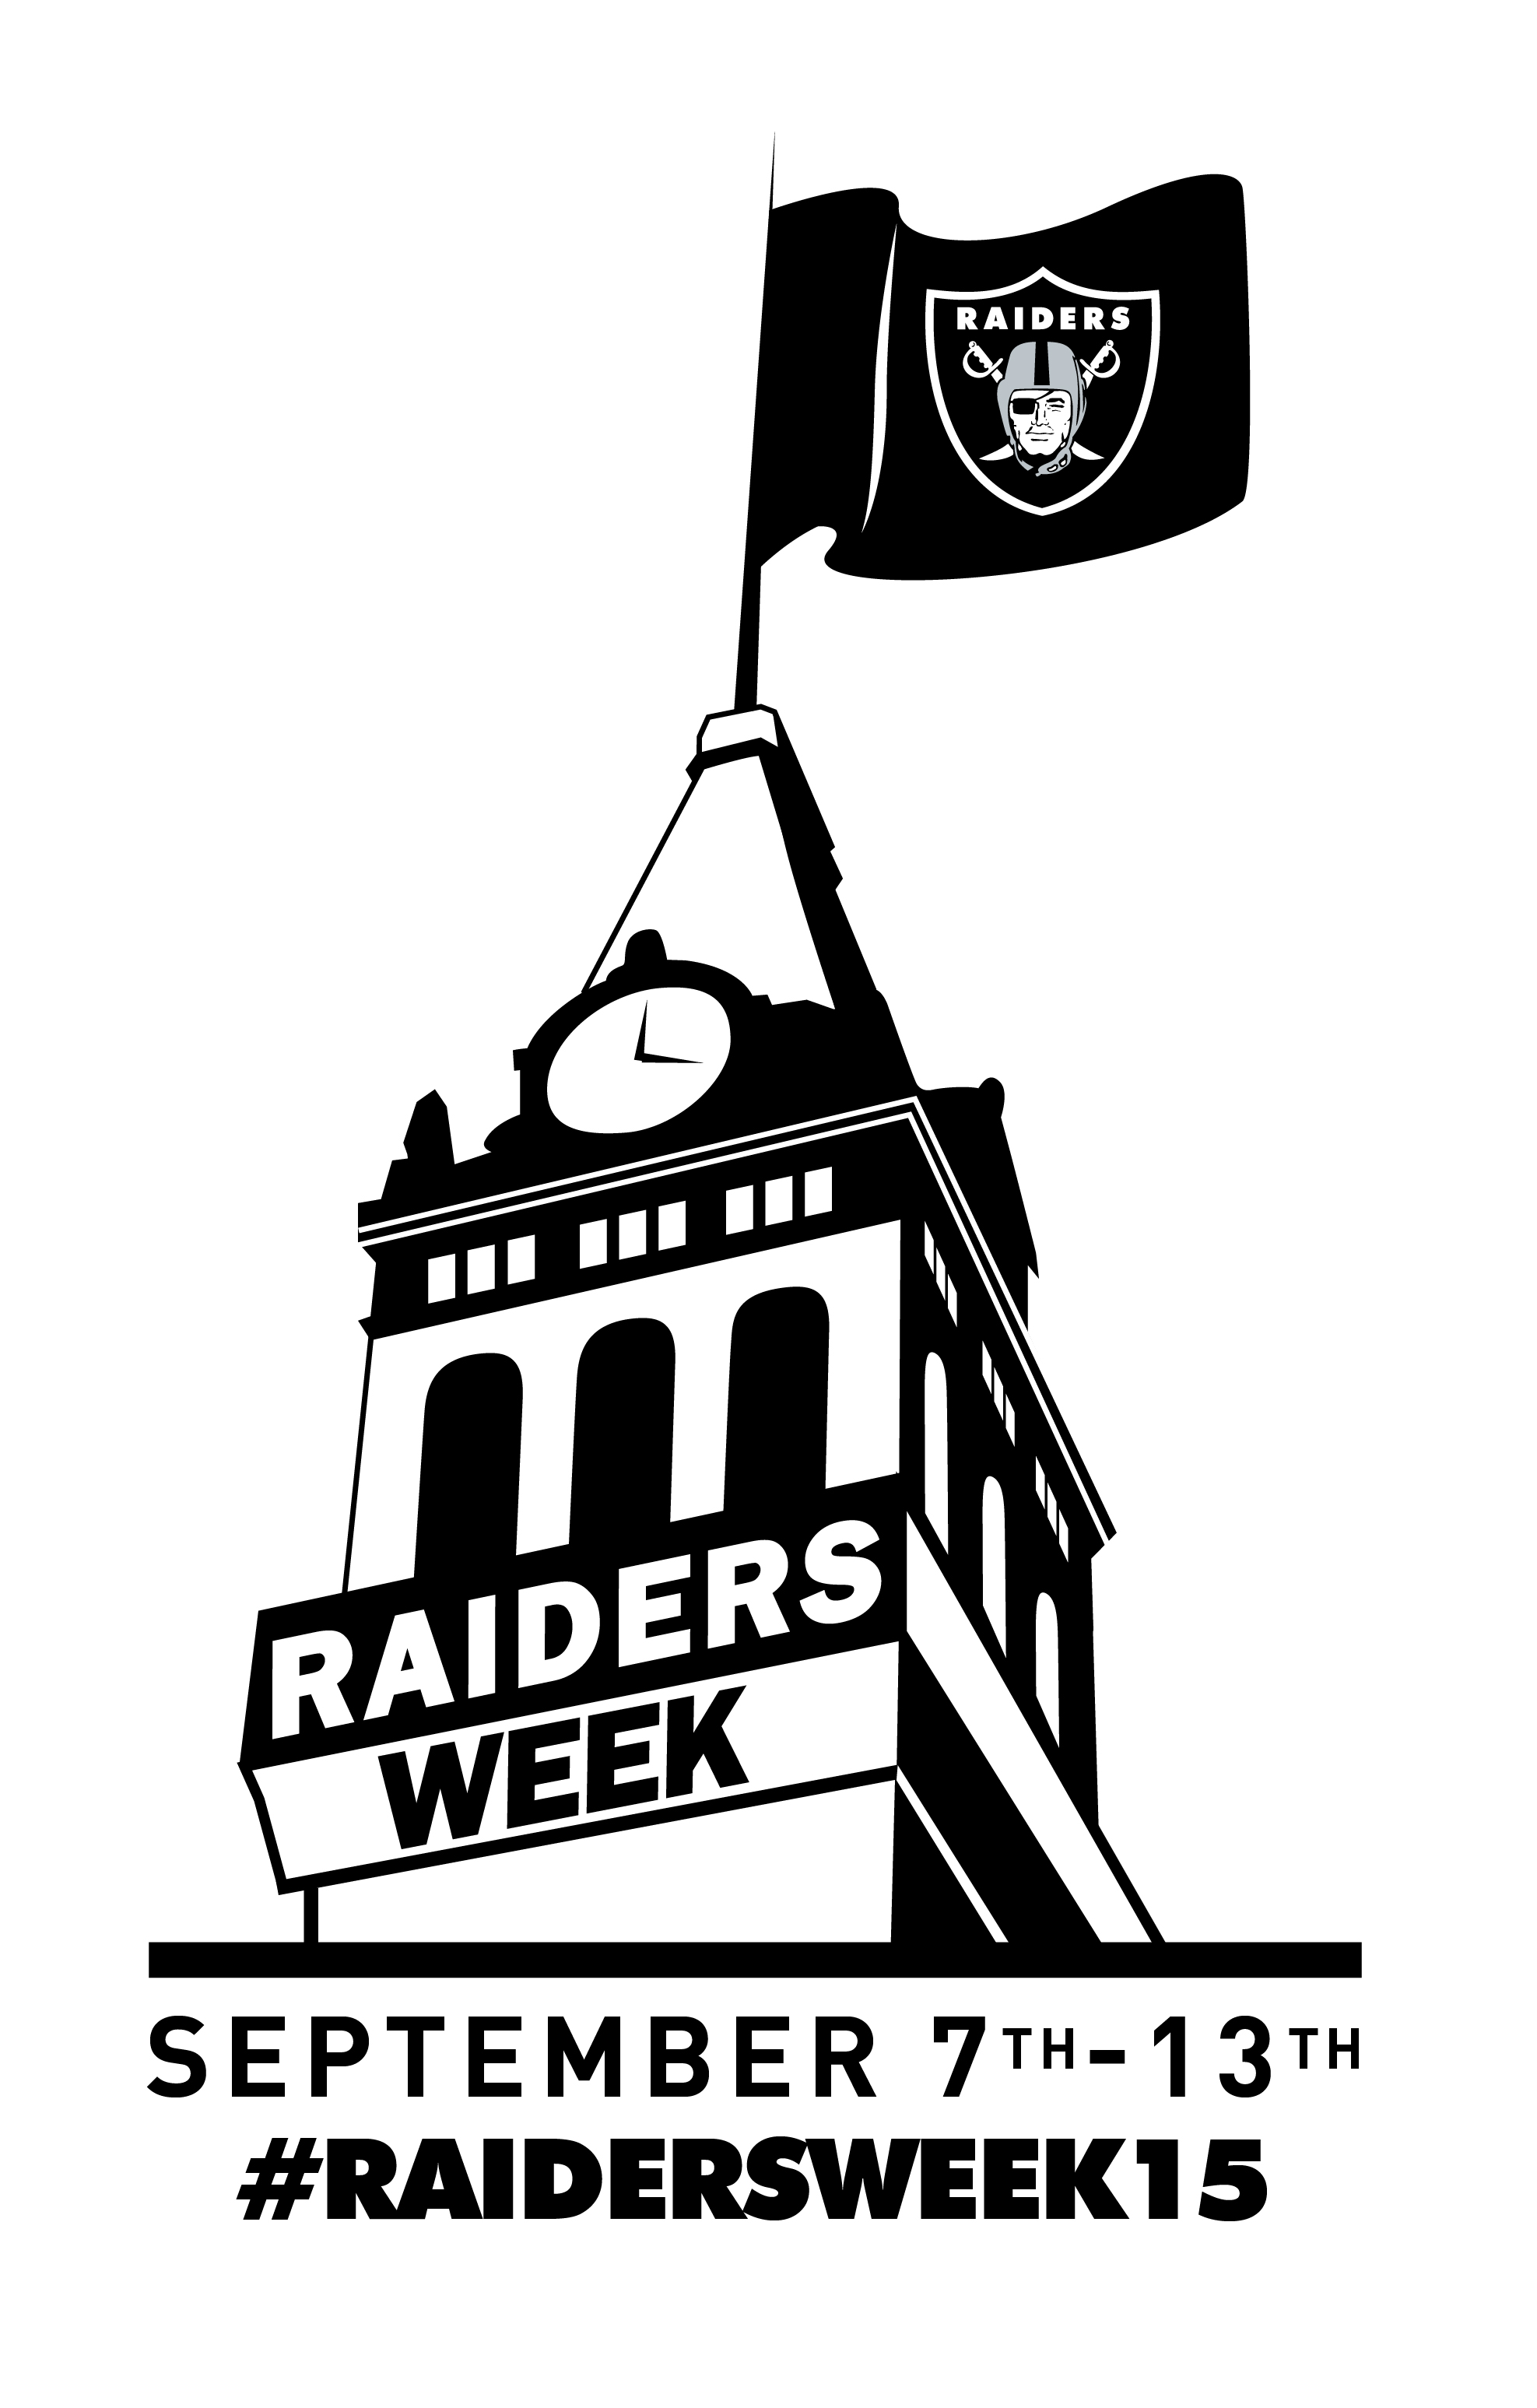 Oakland Shows Off Silver And Black Pride During Raiders Week